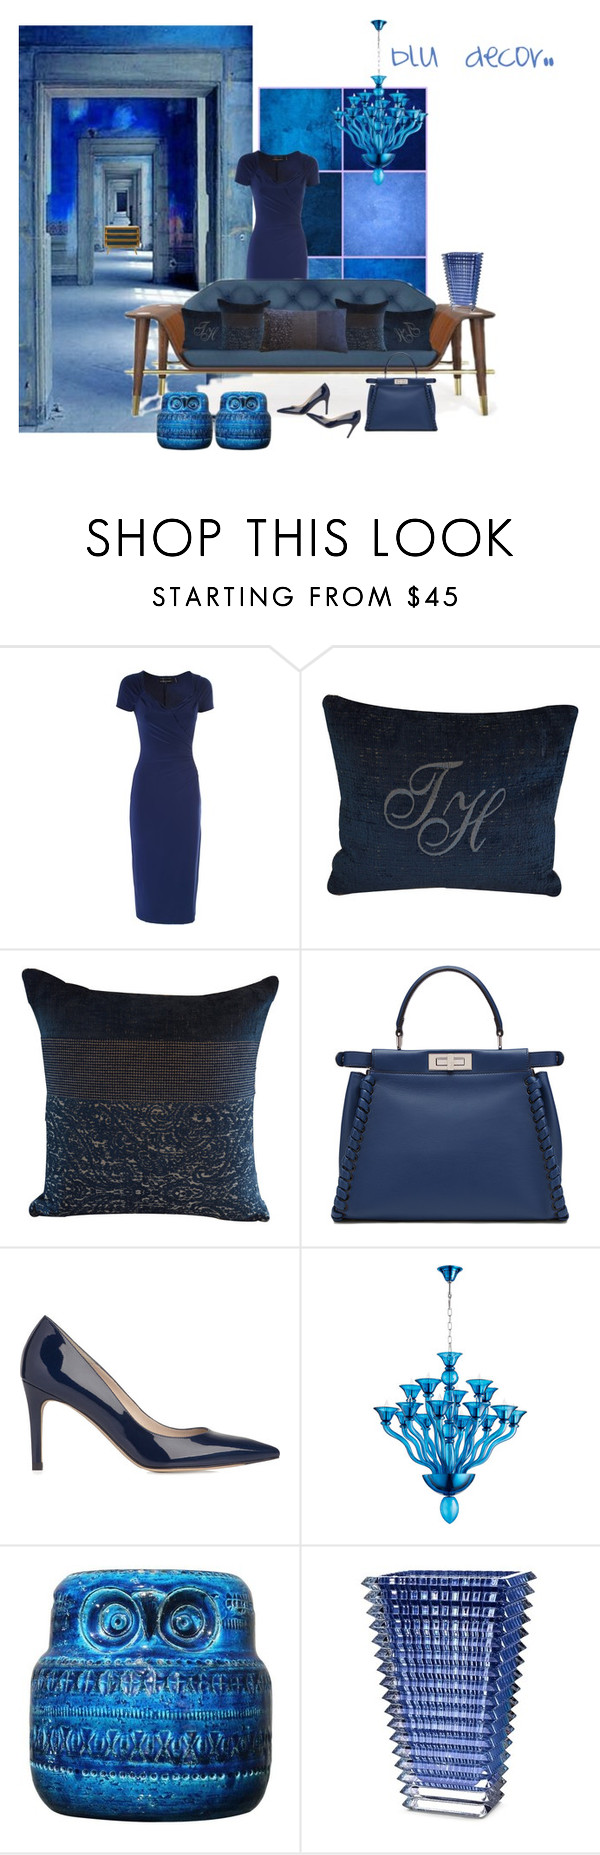 """blu decor"" by home-23b on Polyvore featuring interior, interiors, interior design, Casa, home decor, interior decorating, Norma Kamali, Fendi, L.K.Bennett e Bitossi"